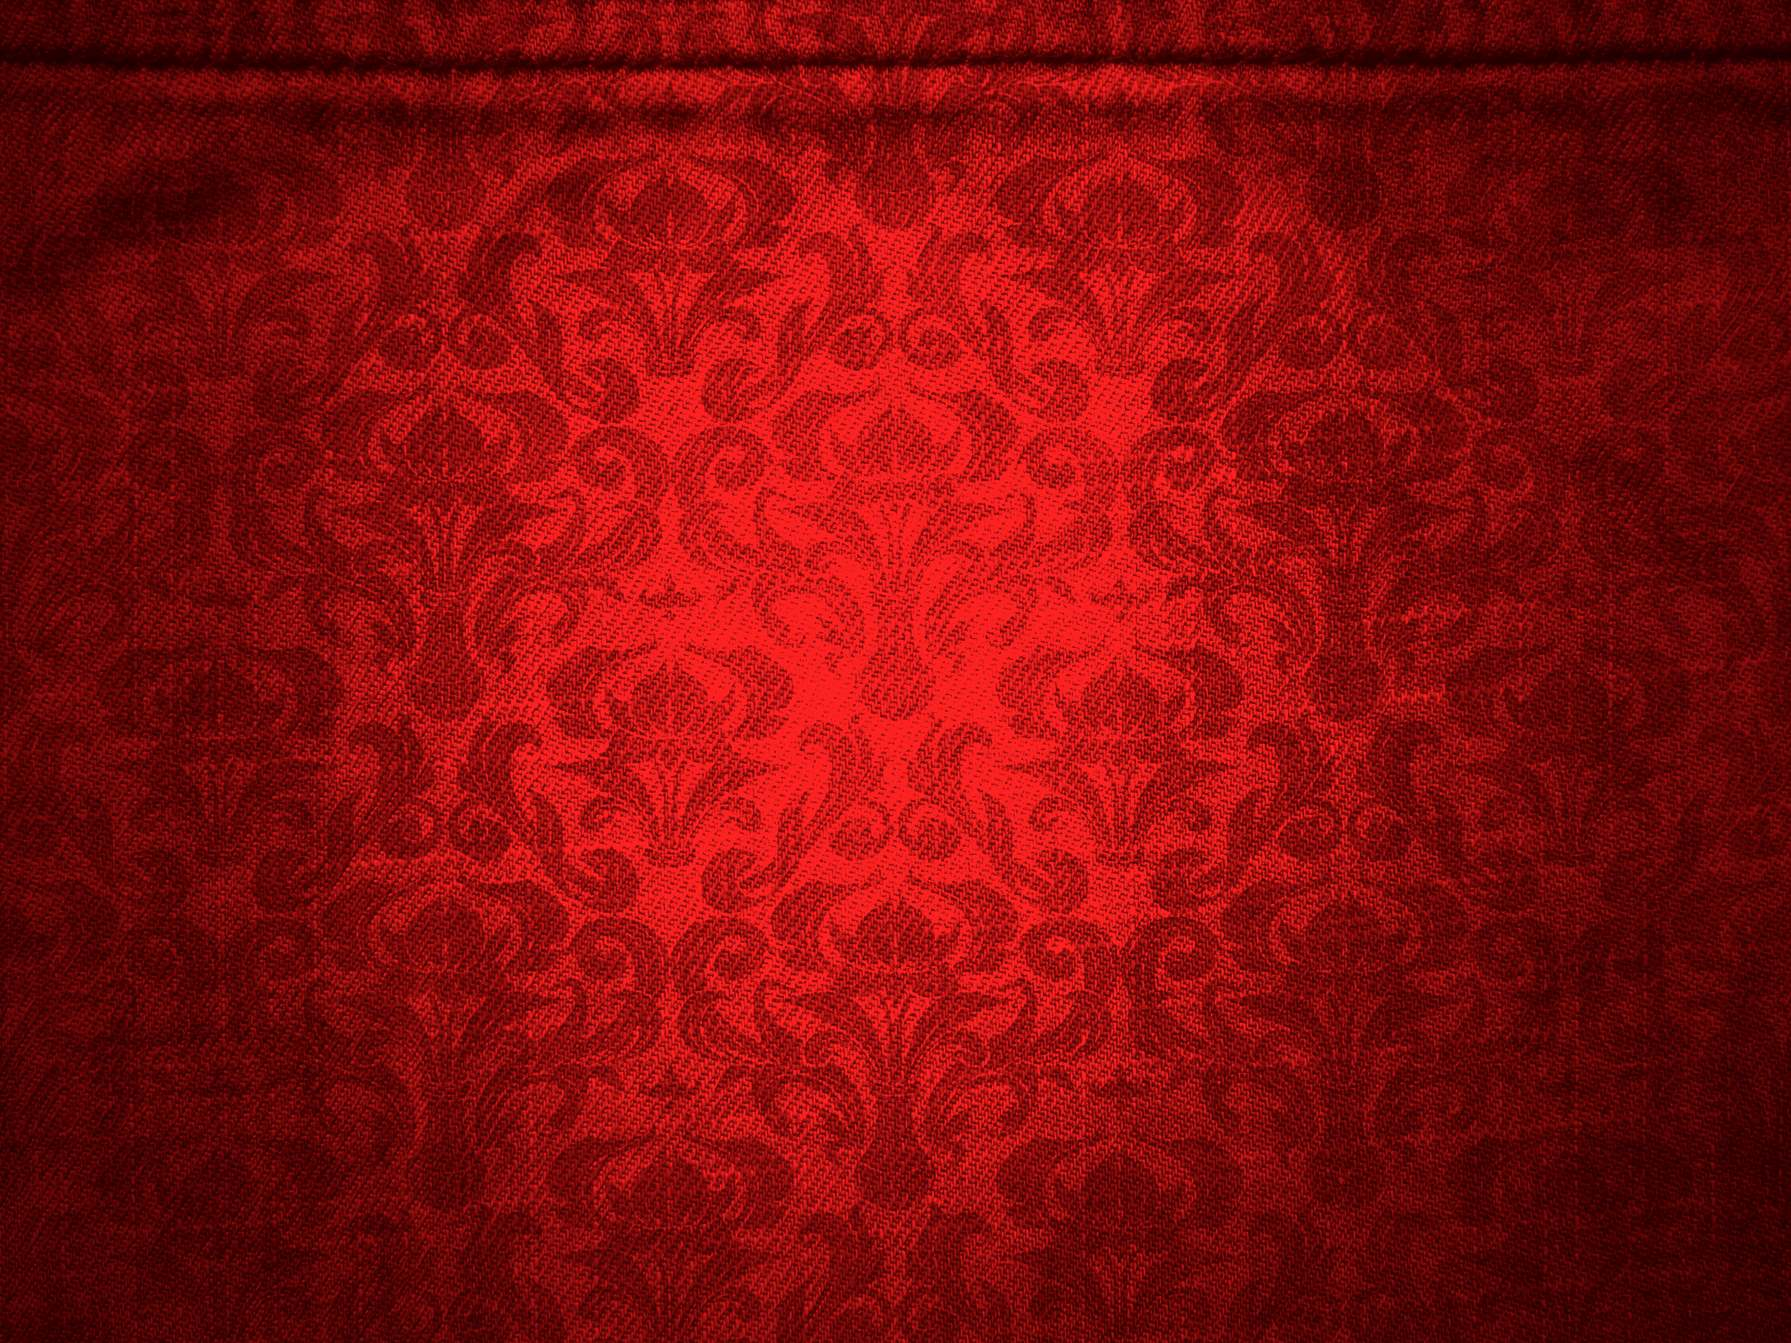 Red Canvas With Damask Pattern Background - PhotoHDX